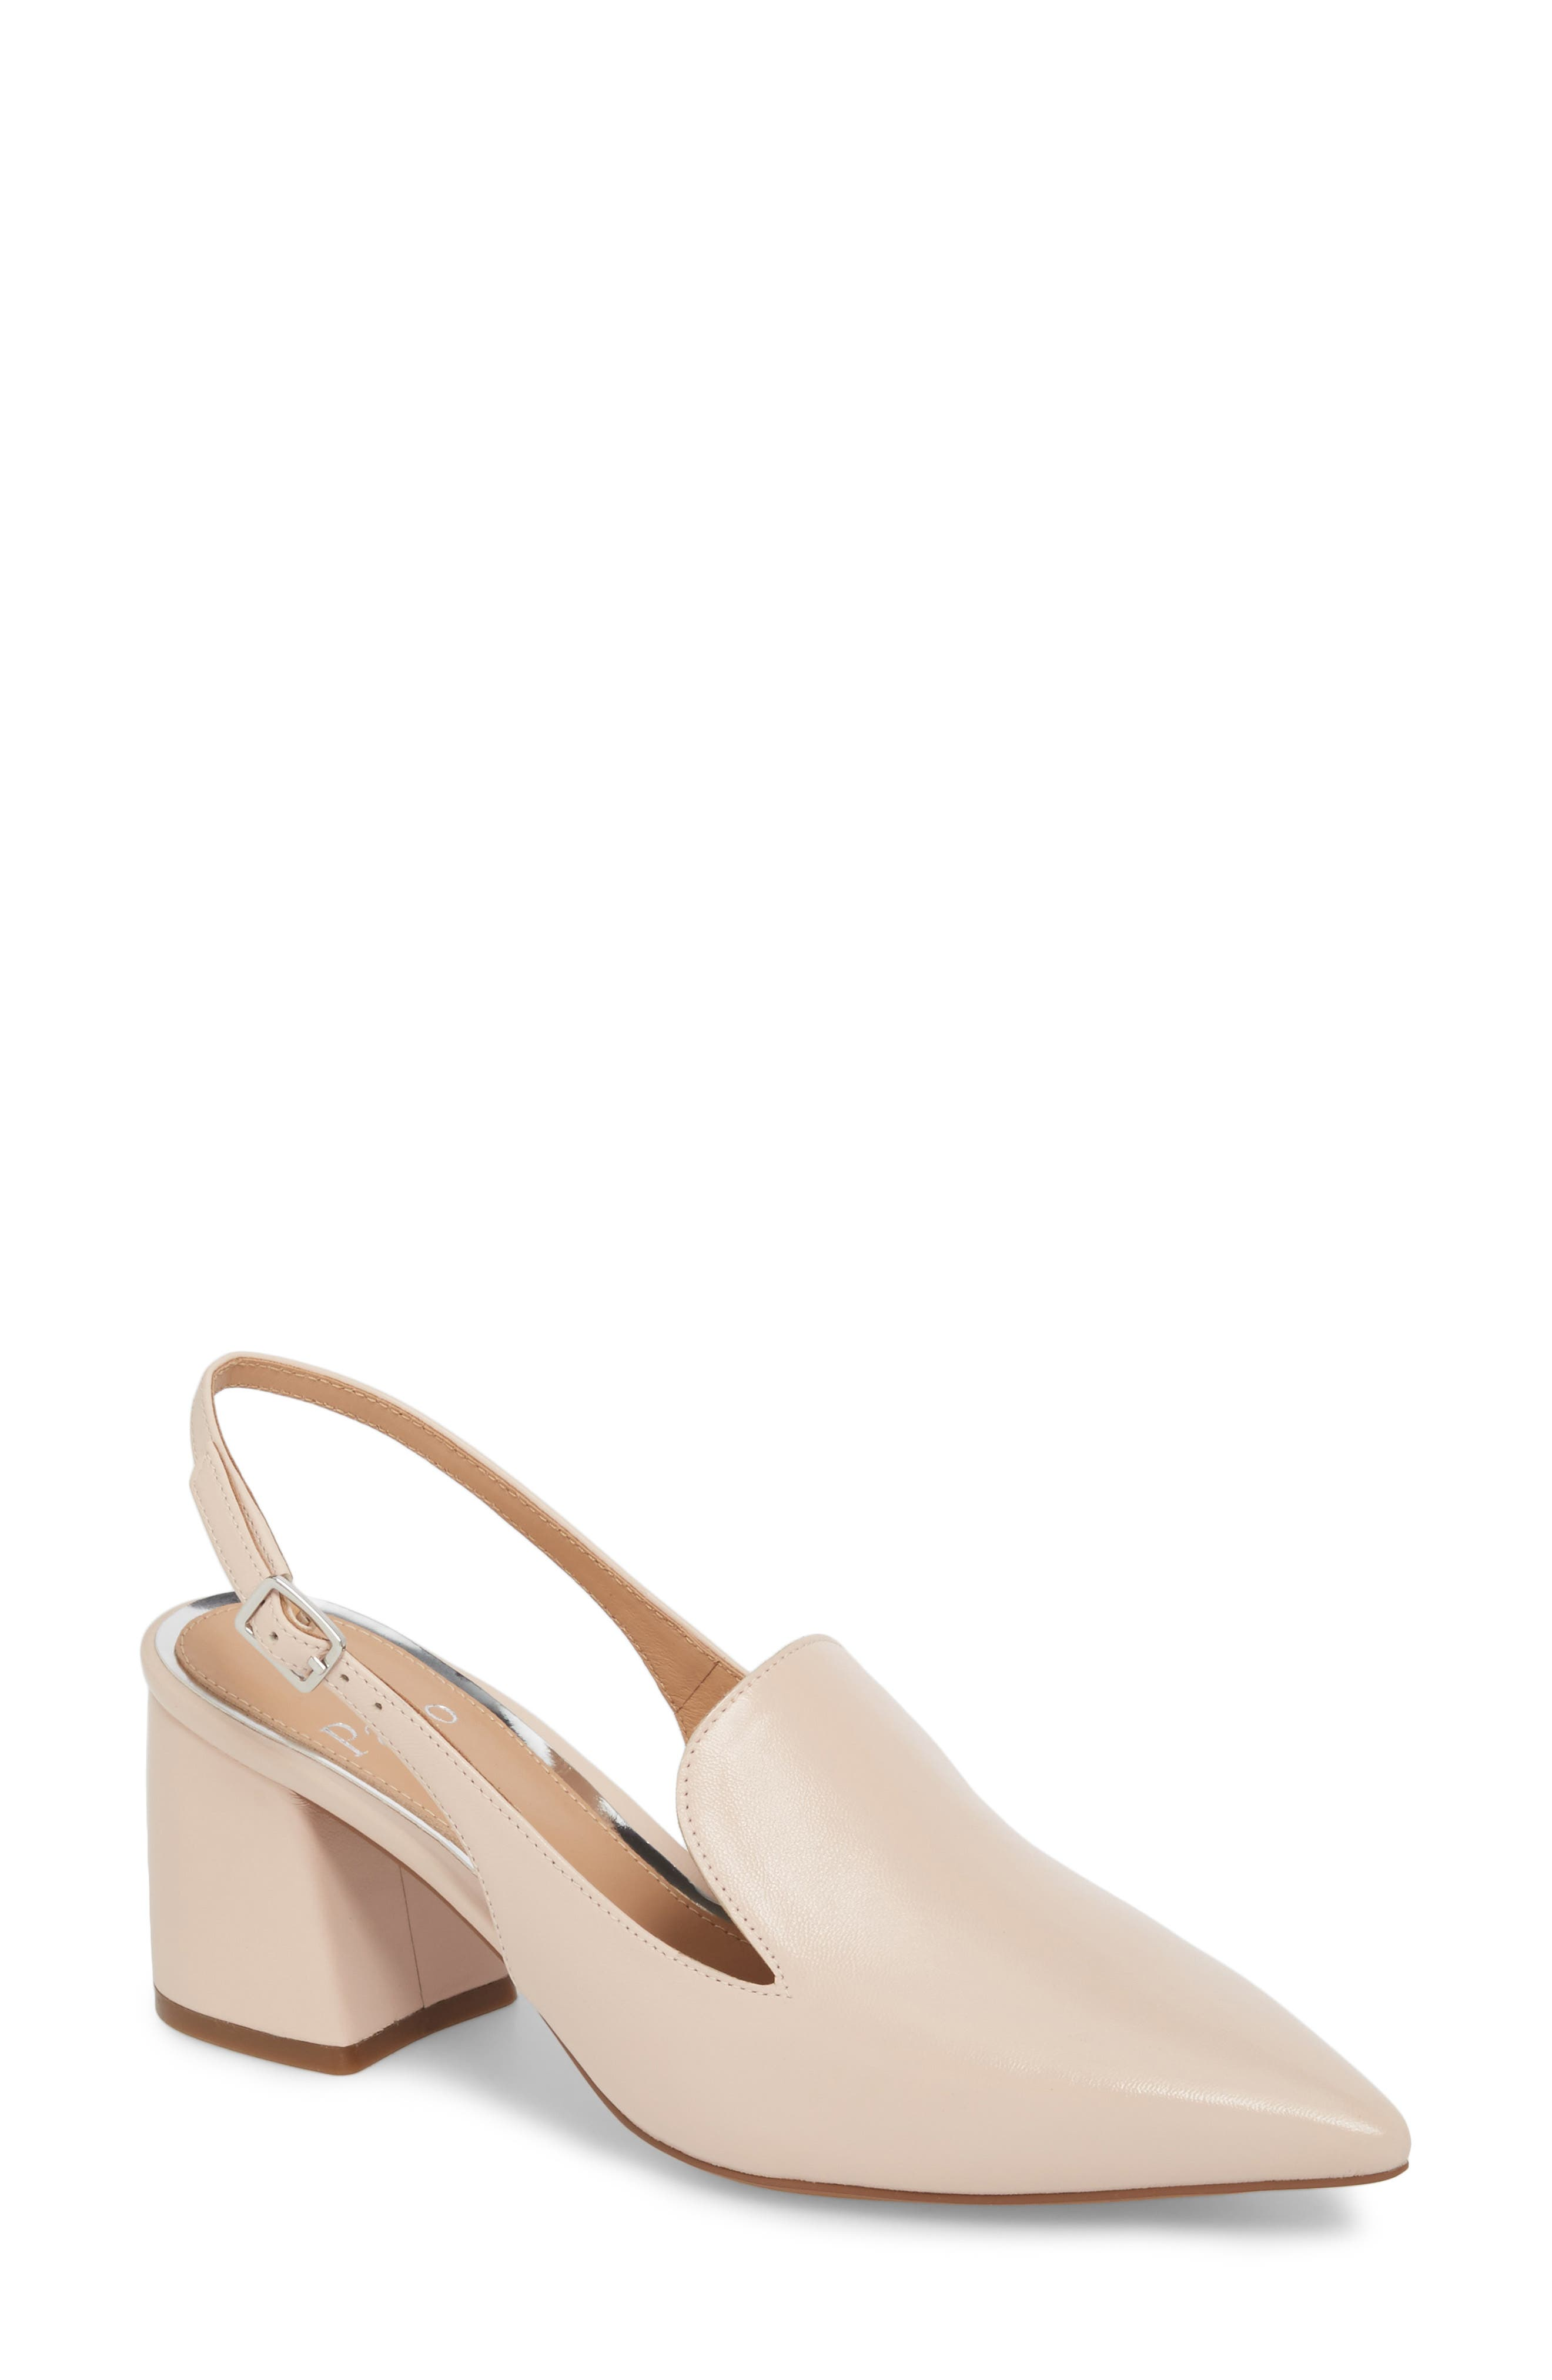 Carly Slingback Pump,                             Main thumbnail 1, color,                             Pale Pink Leather